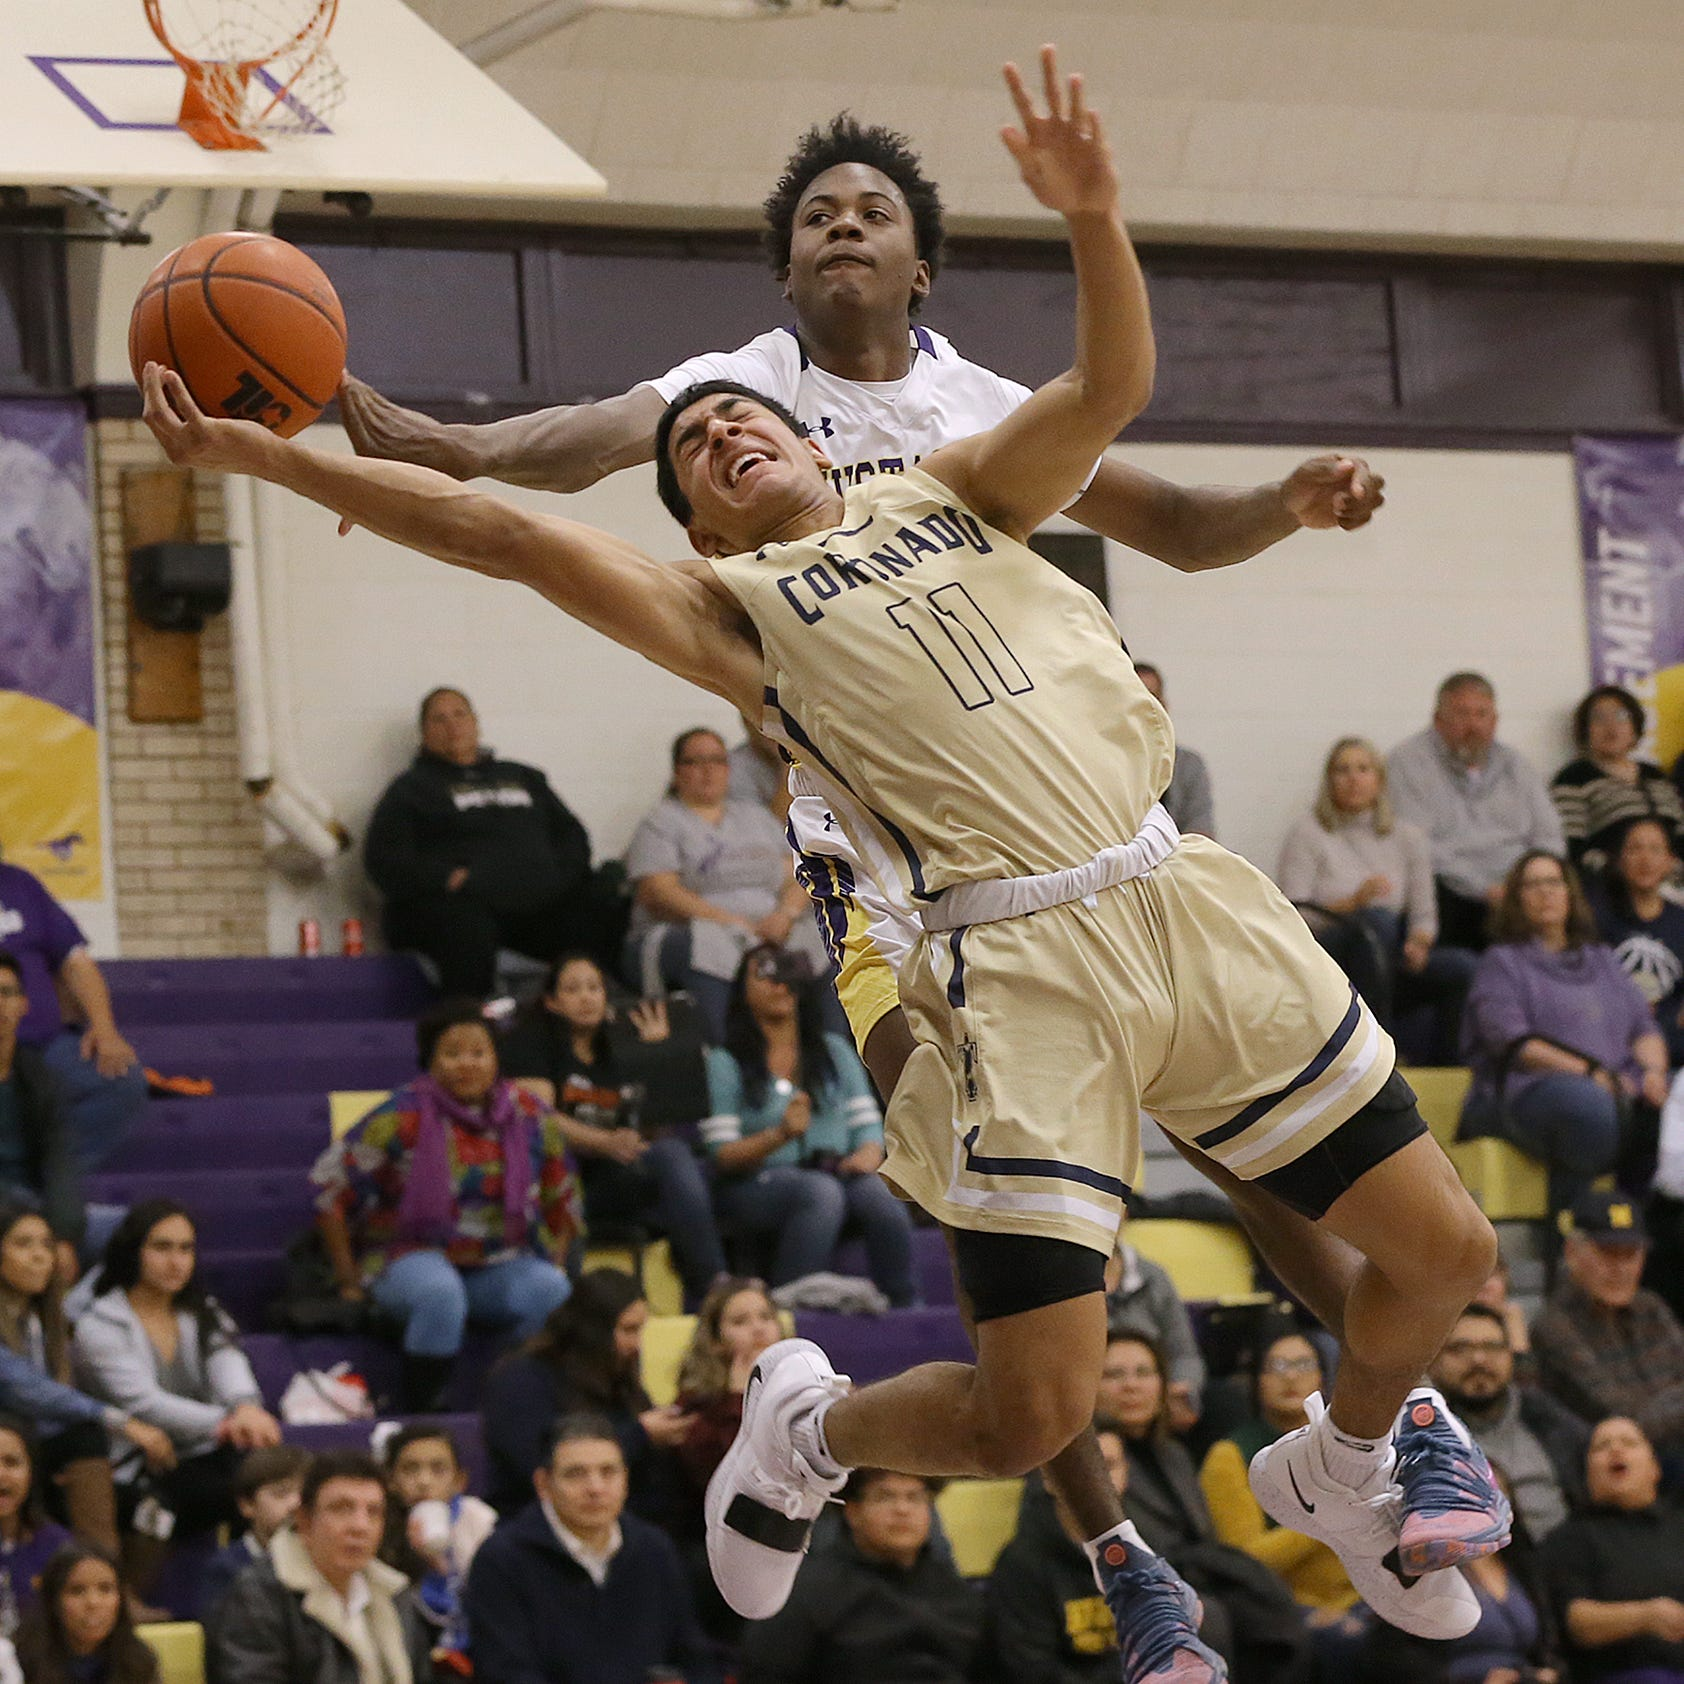 Burges forward Tristen Newton blocks a shot by Coronado's Ayaan Sohail during their game recently at Burges High School. Burges defeated Coronado 73-56.